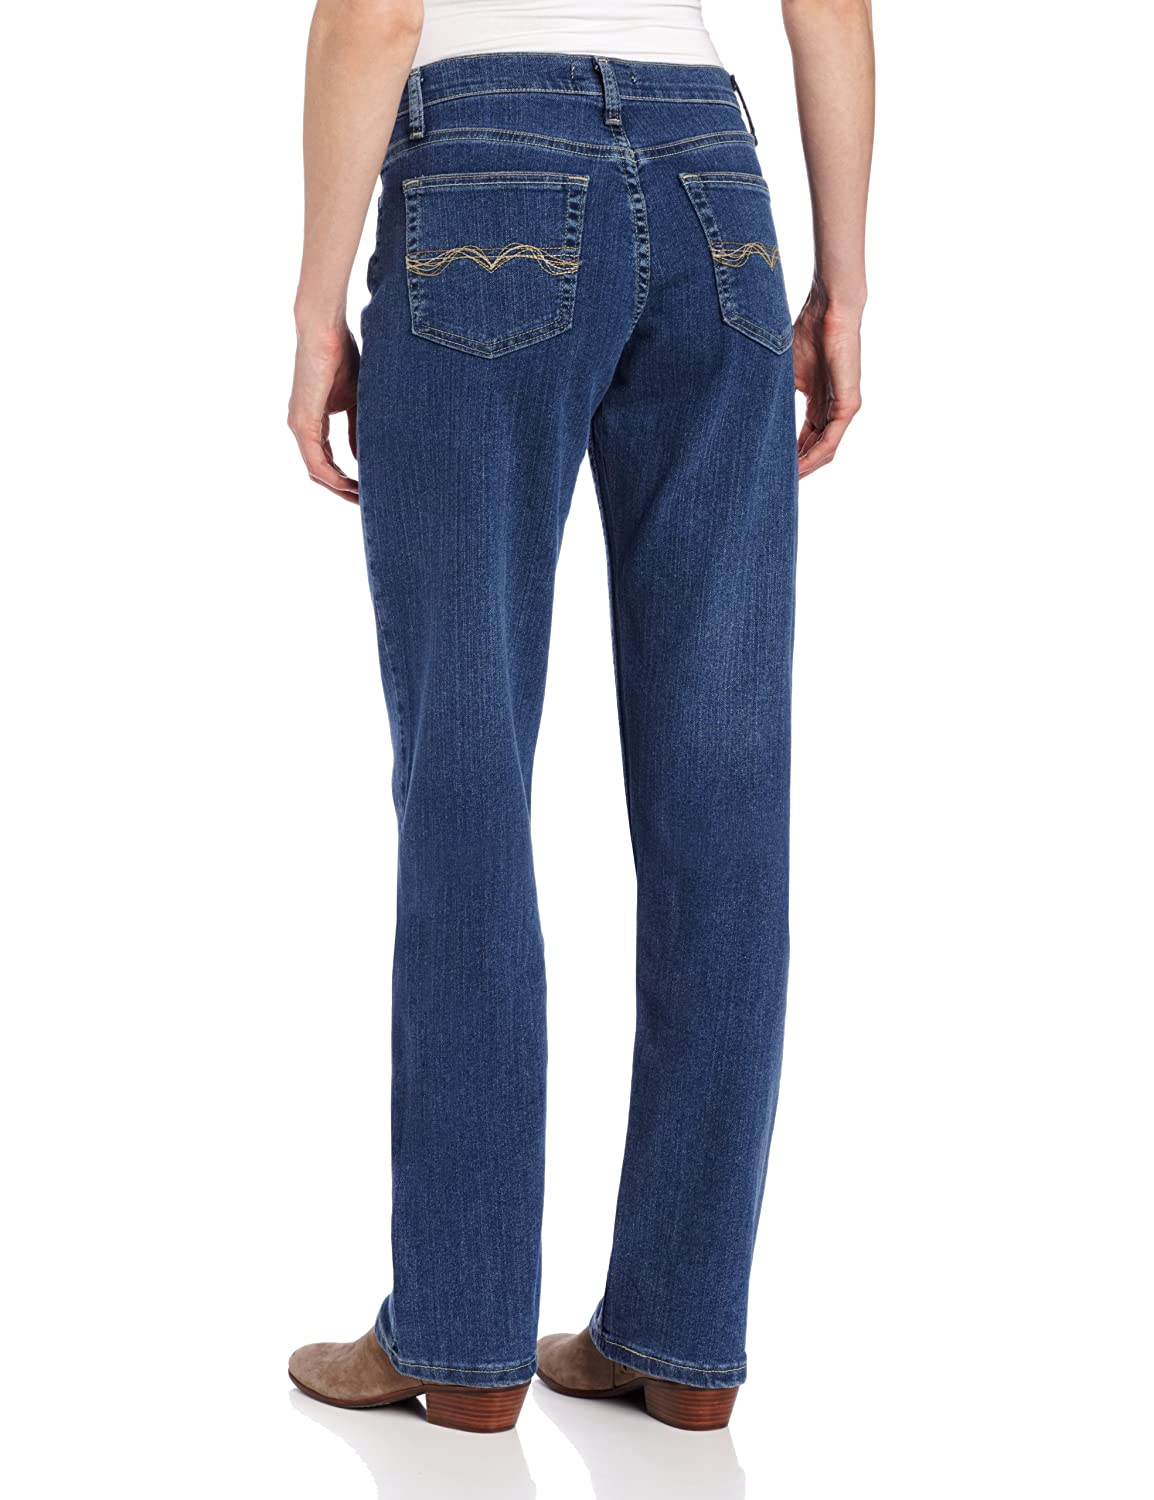 4d07974e Wrangler Women's As Real as Wrangler Relaxed Fit Straight Leg Jean at  Amazon Women's Jeans store